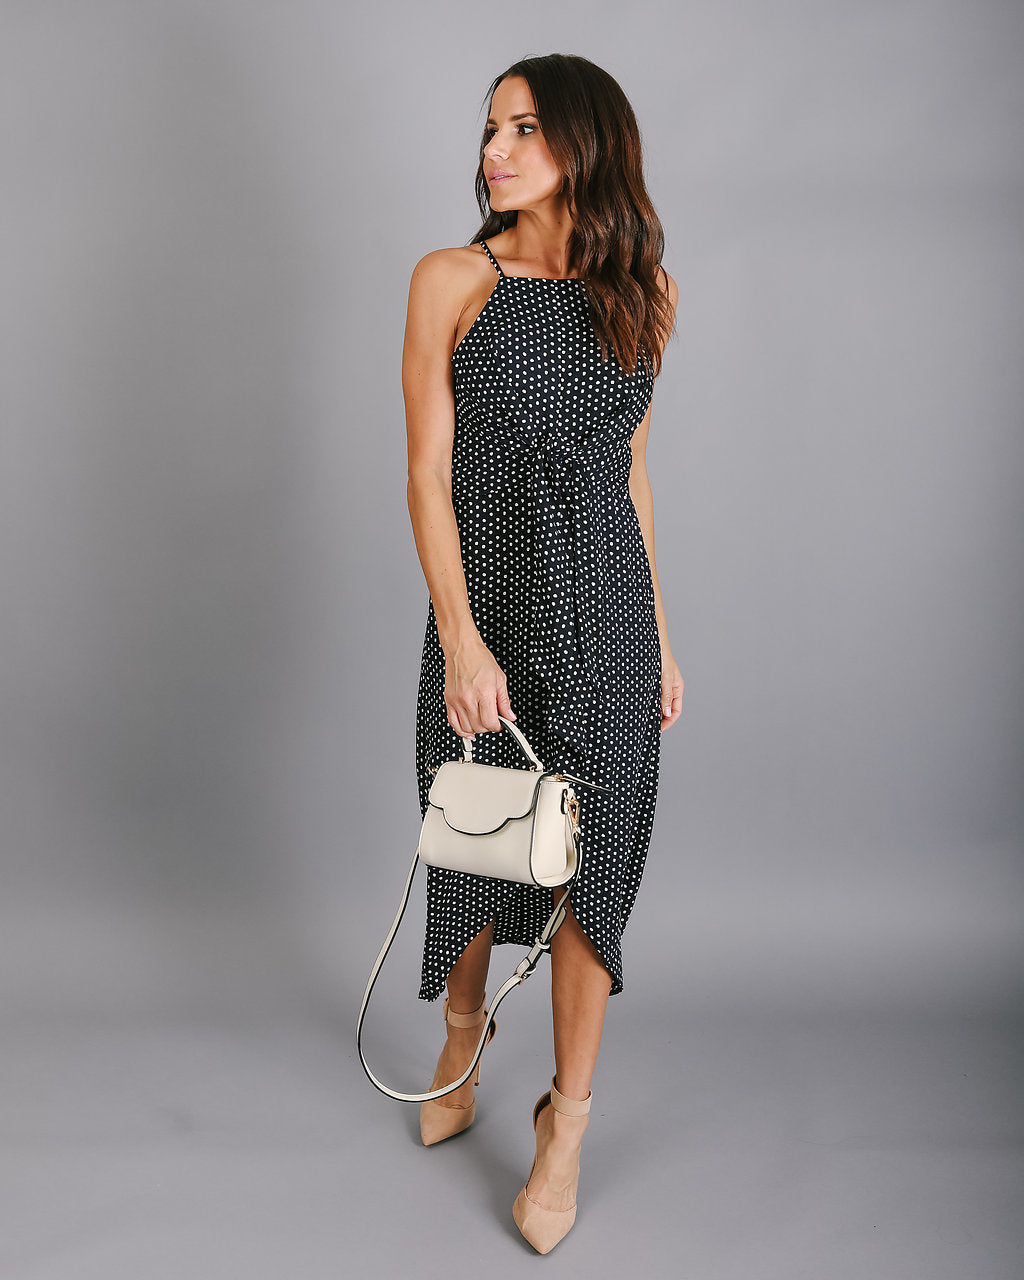 Polka Perfect Midi Dress – VICI